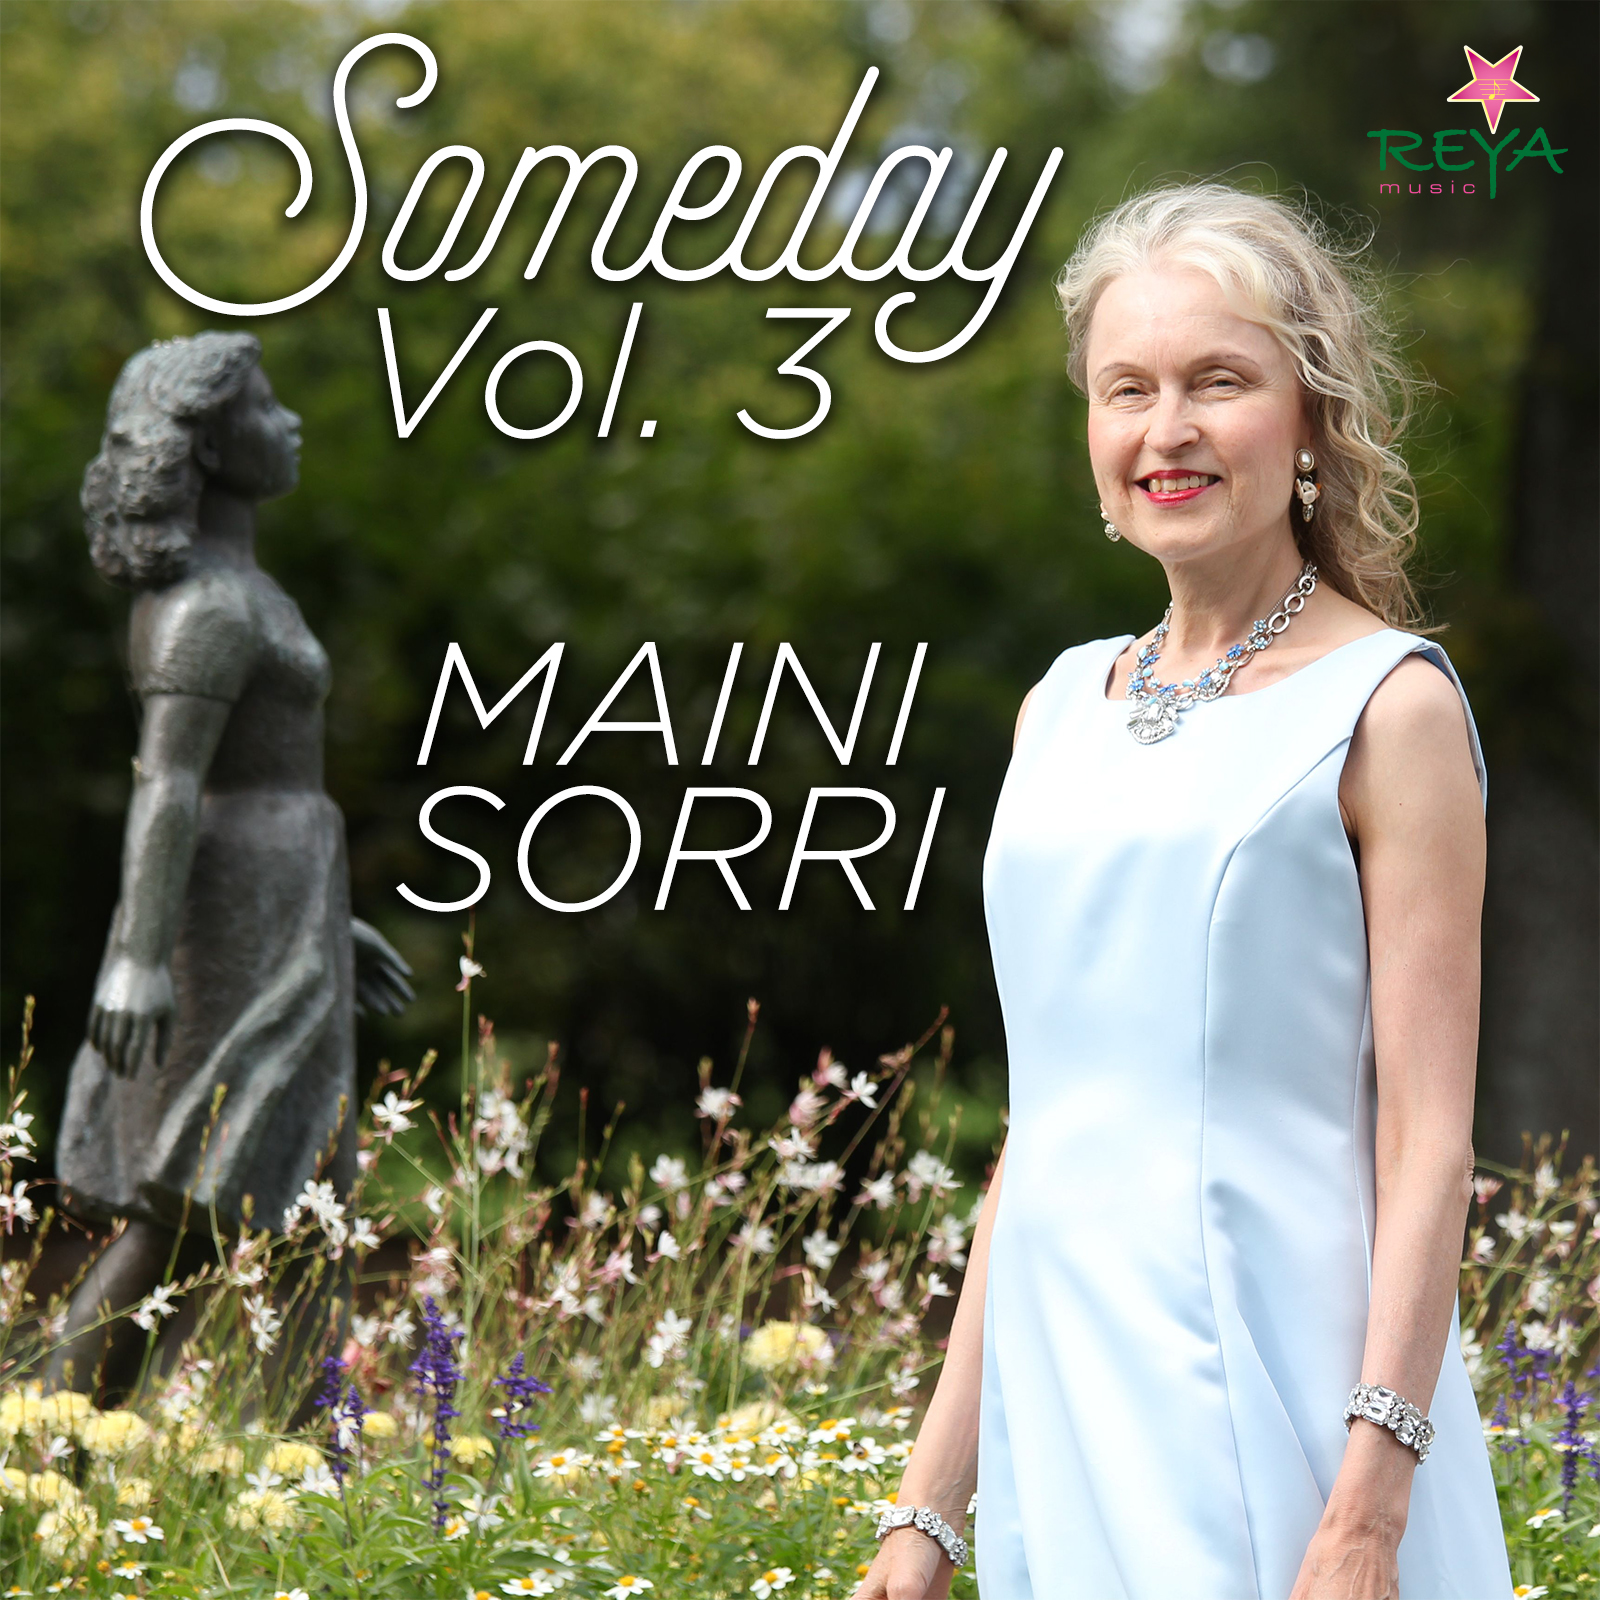 Maini Sorri - Someday Vol. 3 cd artwork.jpg